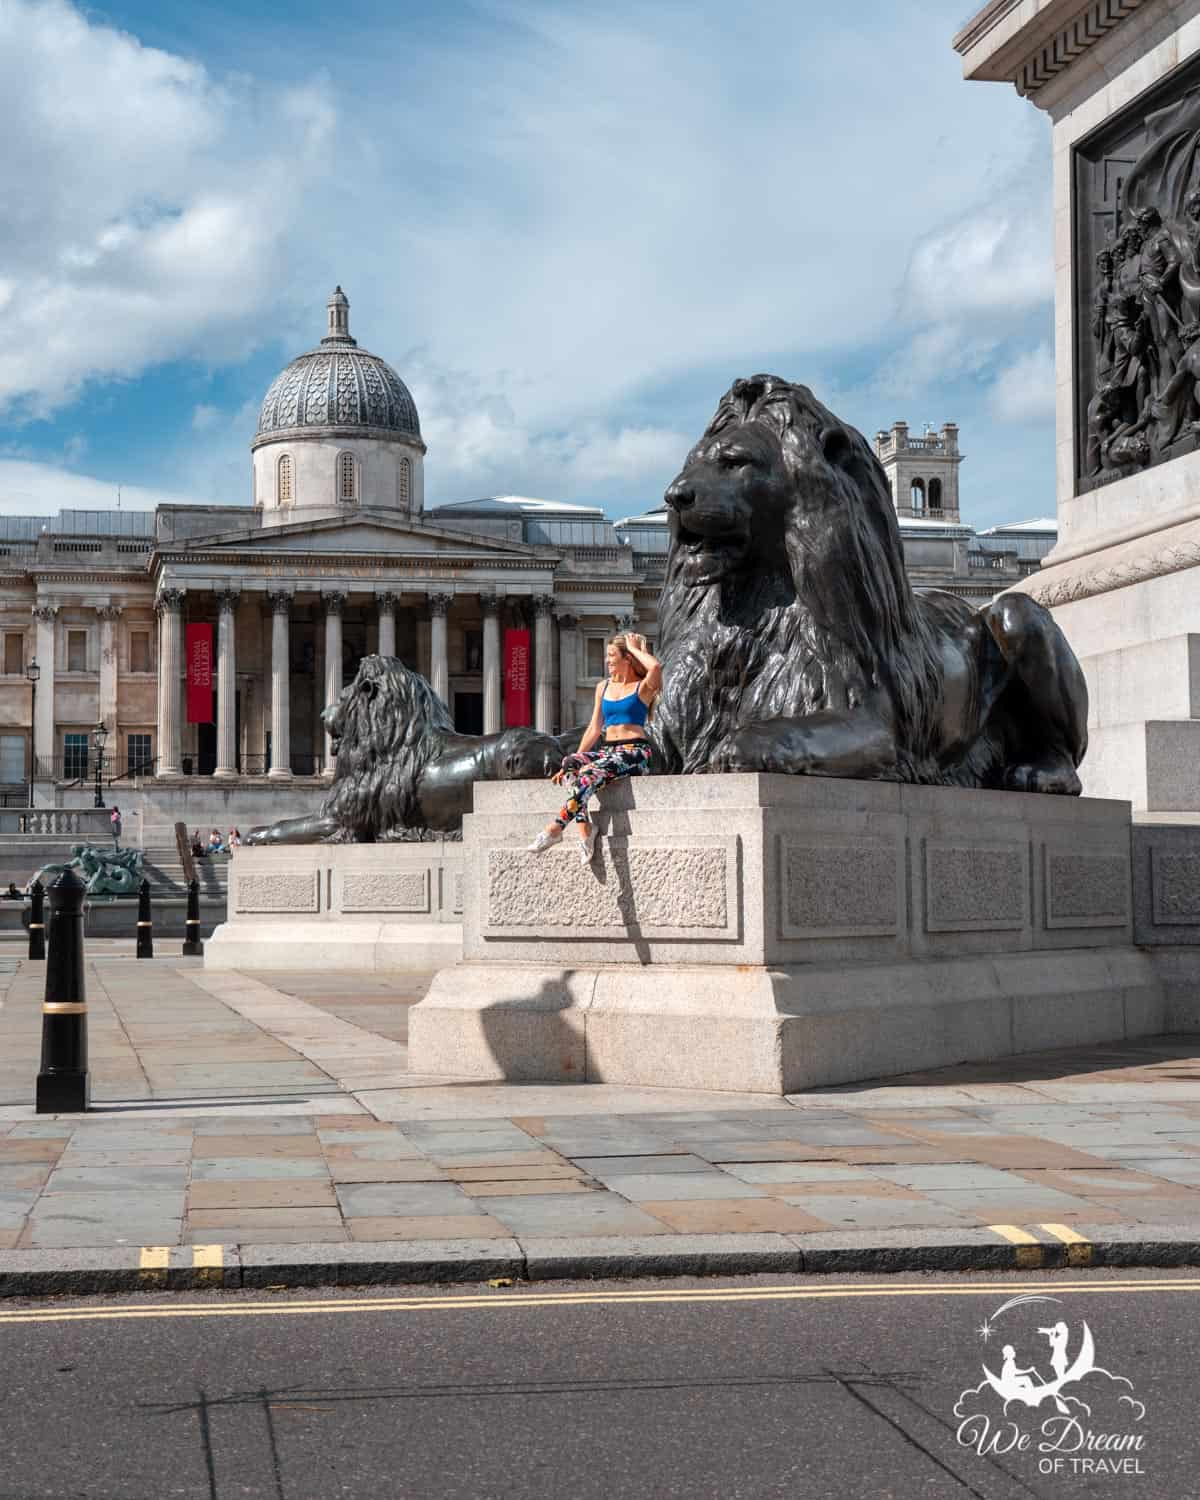 Brass lions in front of the National Gallery at Trafalgar Square London